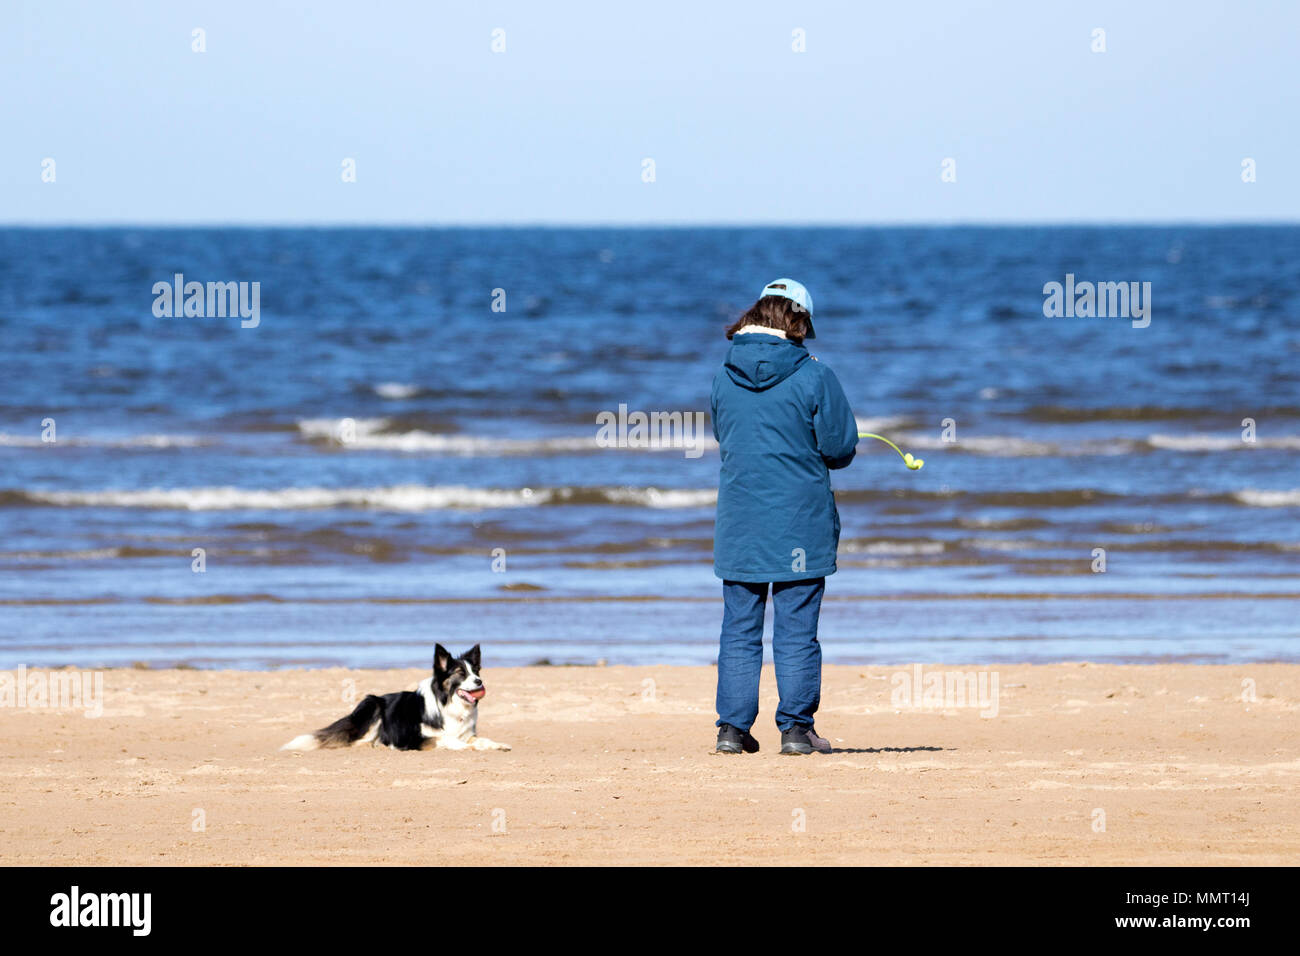 Southport, UK. 13th May 2018. A beautiful sunny and warm start to the day for the dog walkers taking their pooches for a stroll along the golden sands of Southport beach in Merseyside.  Credit: Cernan Elias/Alamy Live News Stock Photo